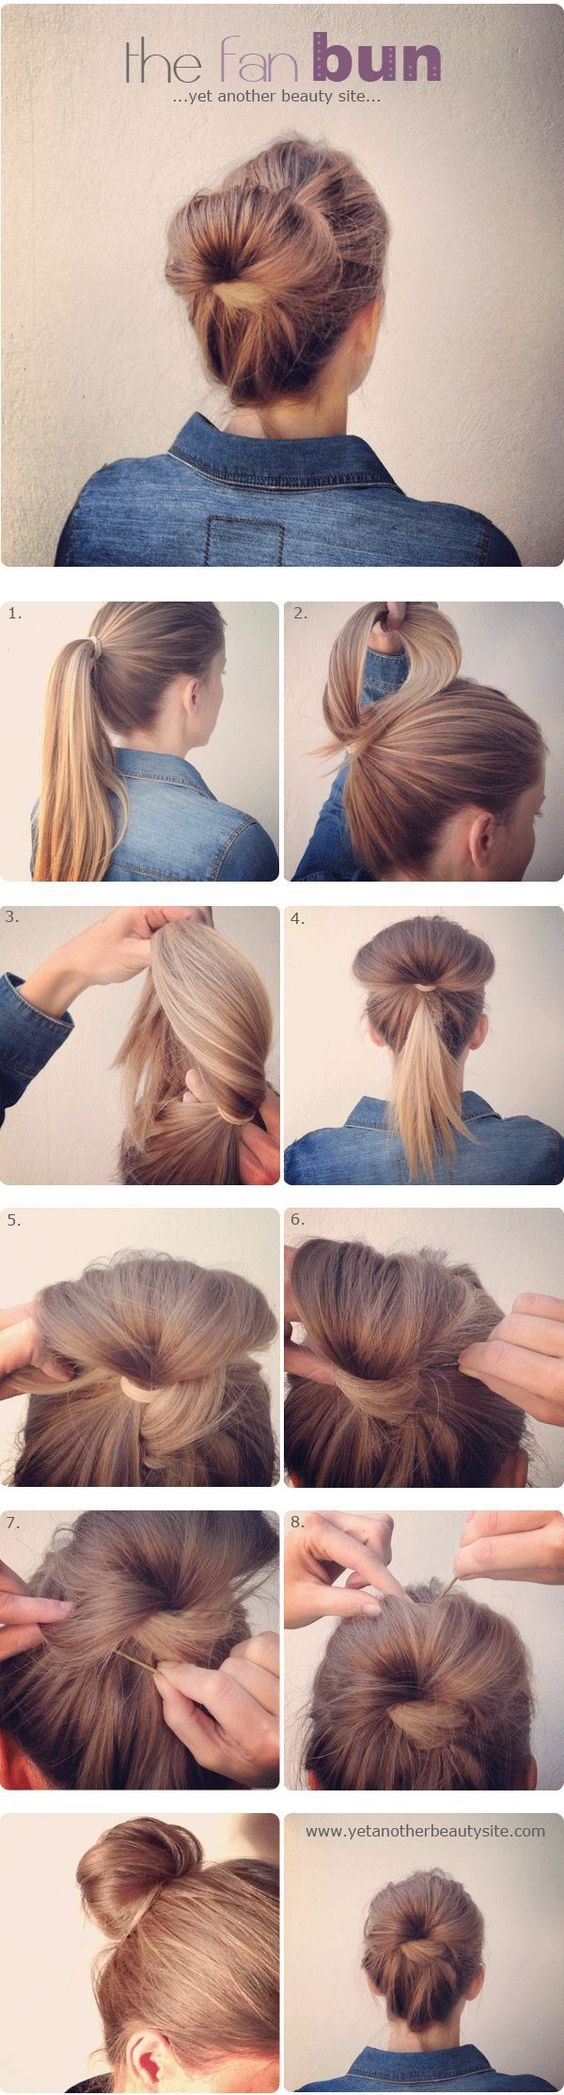 This is by FAR my favorite, quick & easy up-do! Been doing this look for months now, only higher up on my head... looks totally cute with a flower pin accent!: